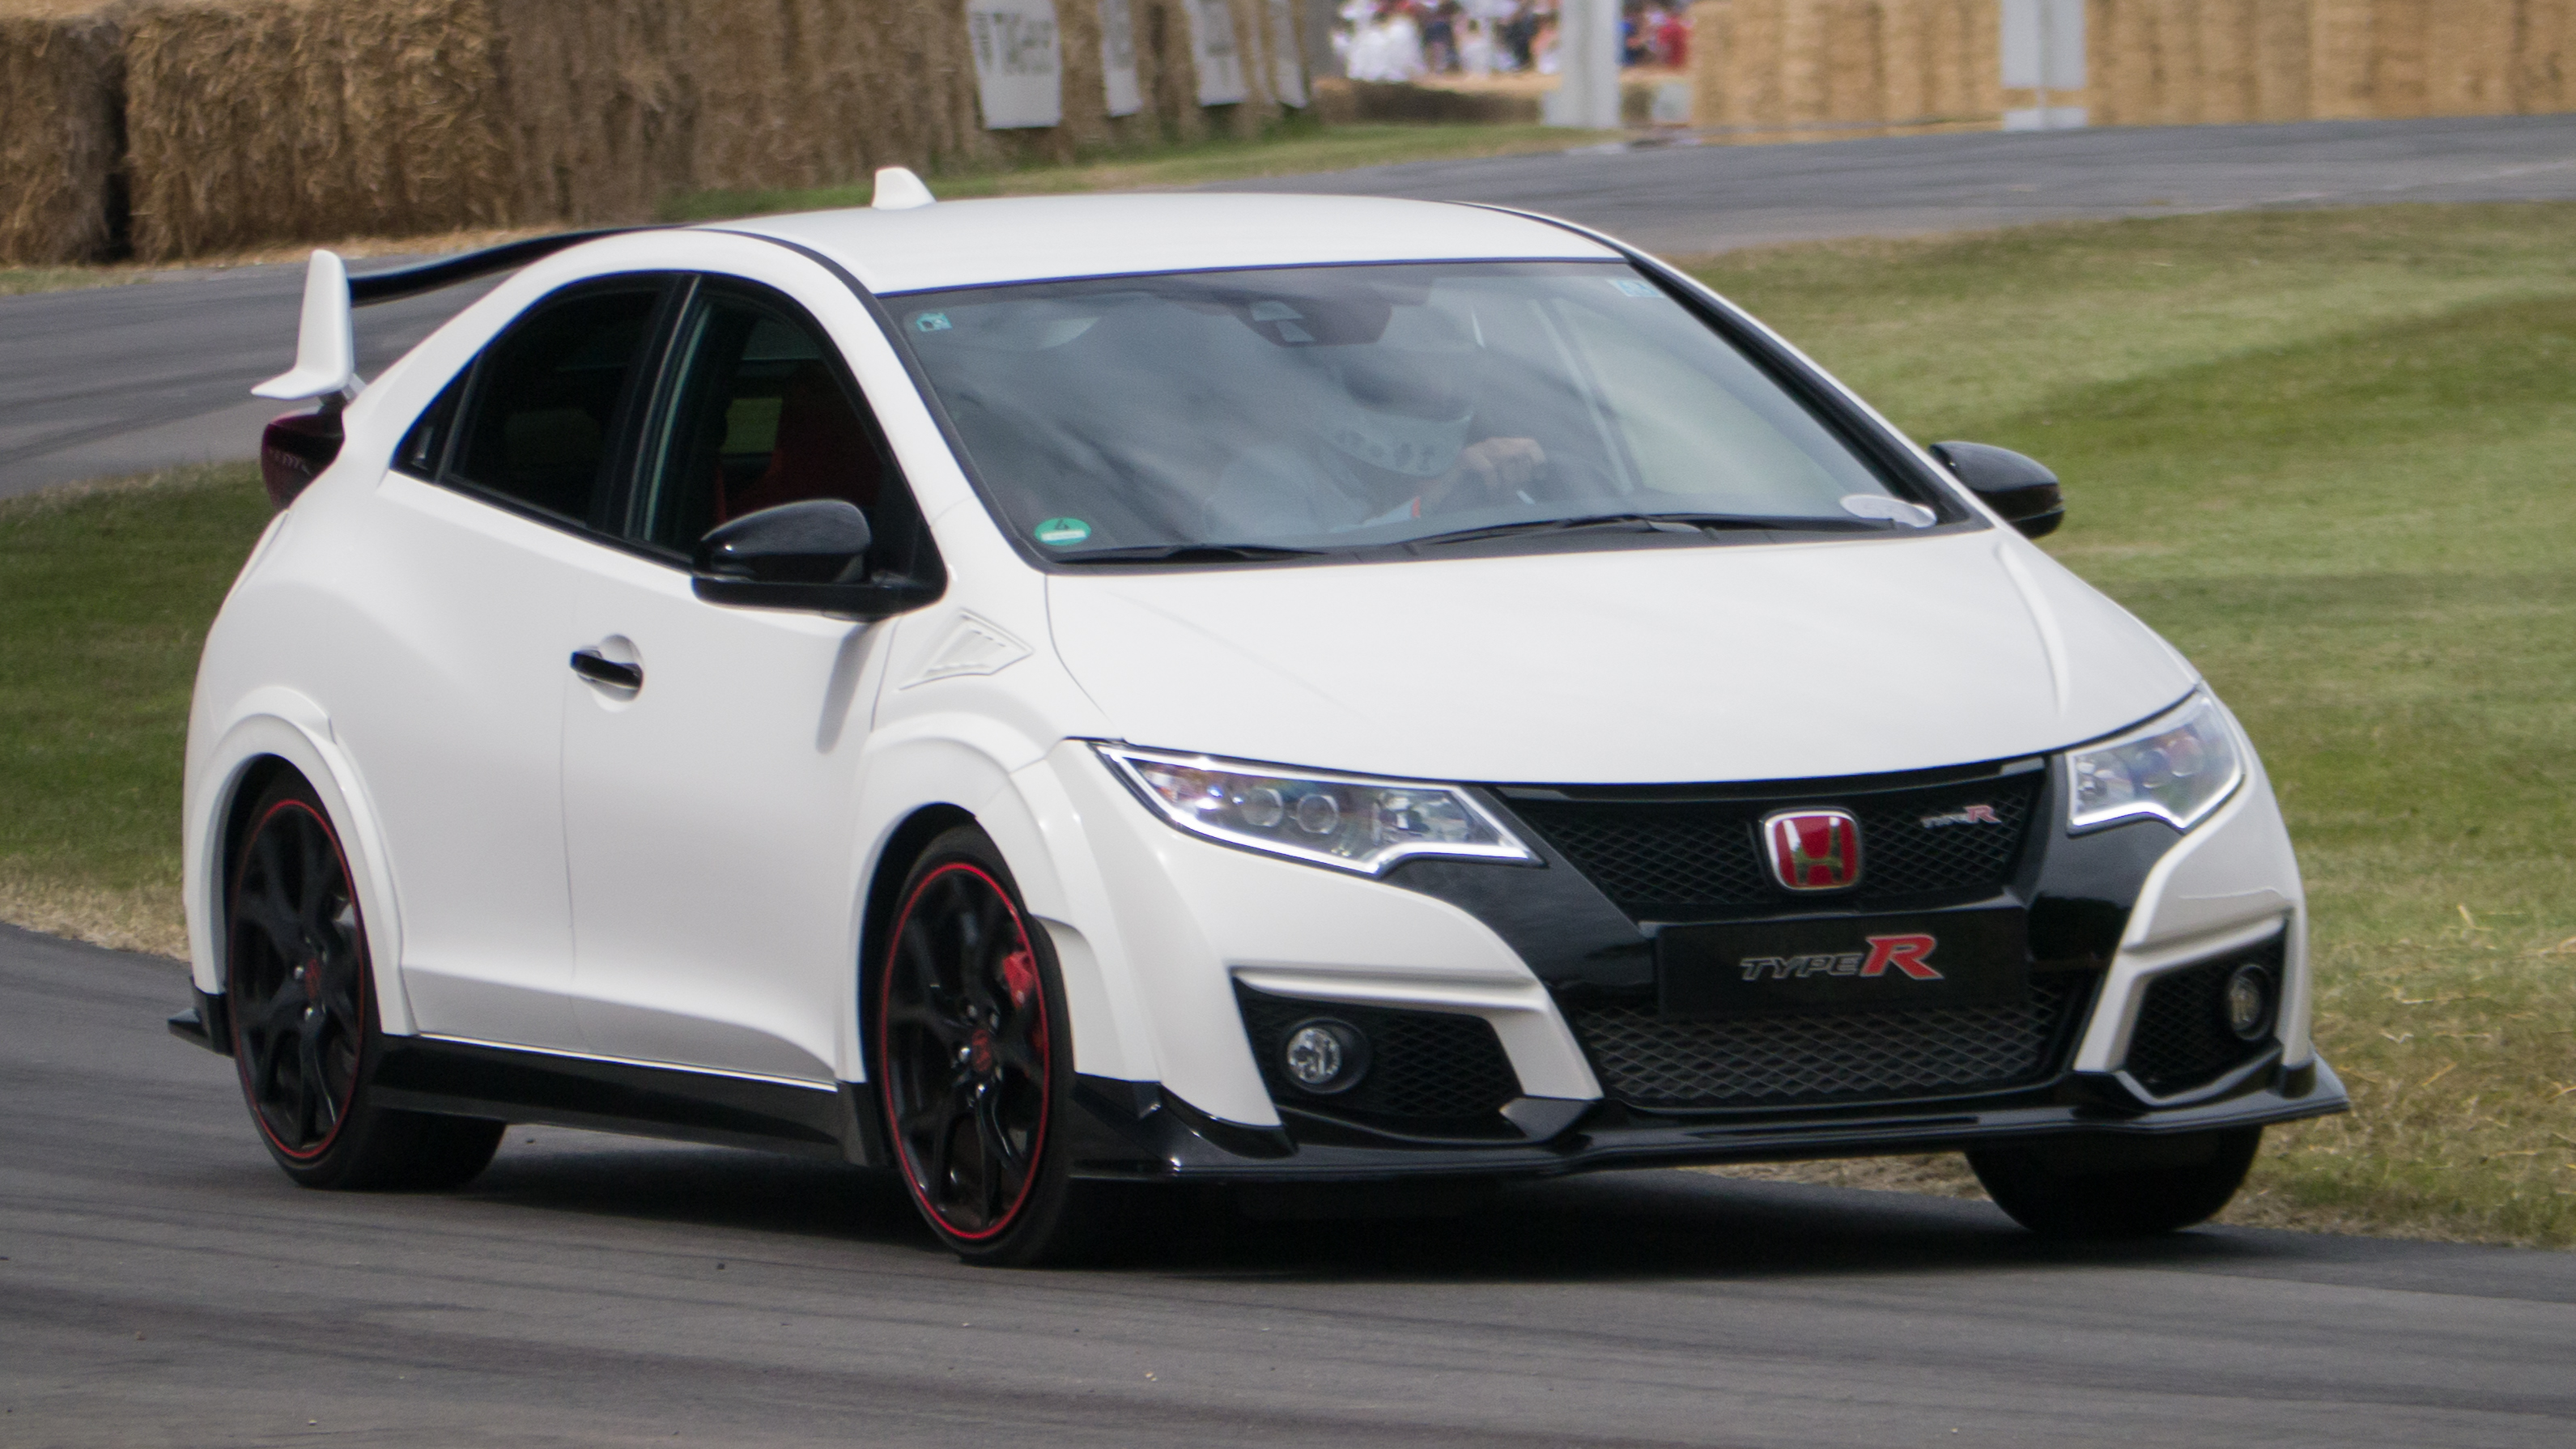 datei 2015 honda civic type r 19440073144 jpg wikipedia. Black Bedroom Furniture Sets. Home Design Ideas